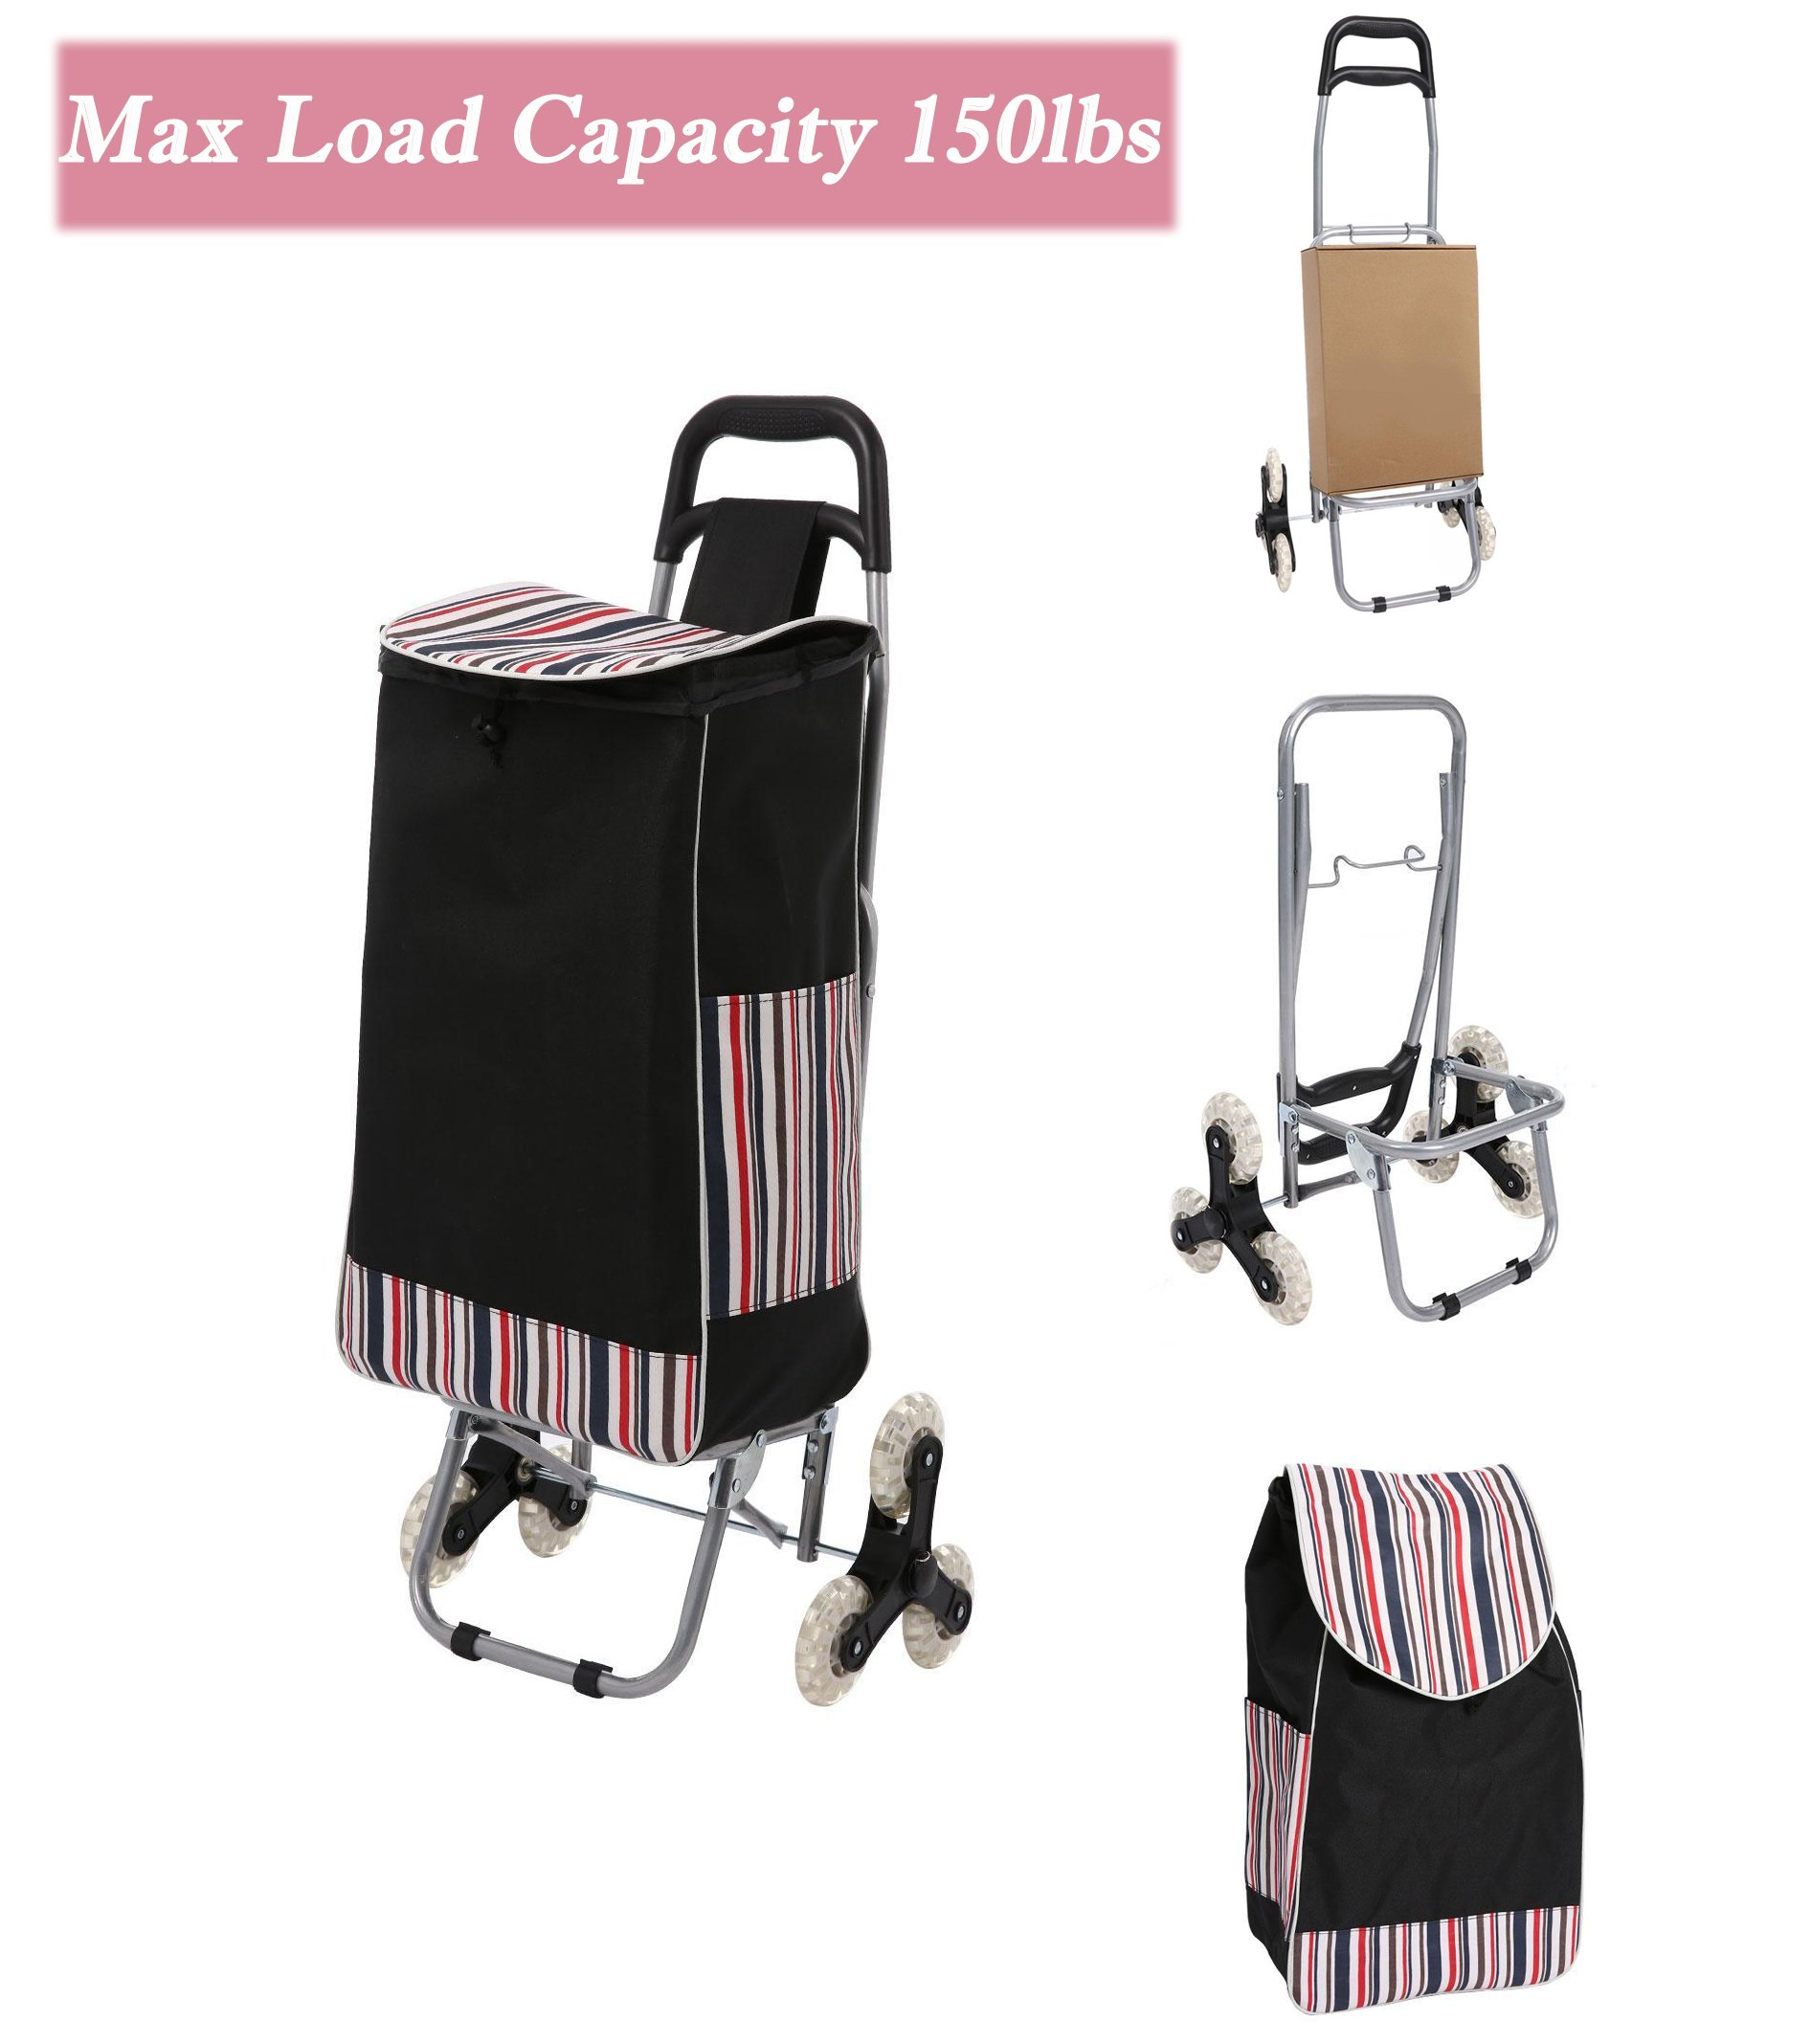 Folding Shopping Cart, Waterproof Grocery Laundry Utility Cart Stair Climbing Trolley Dolly with Wheel, Max Load Capacity 150lbs